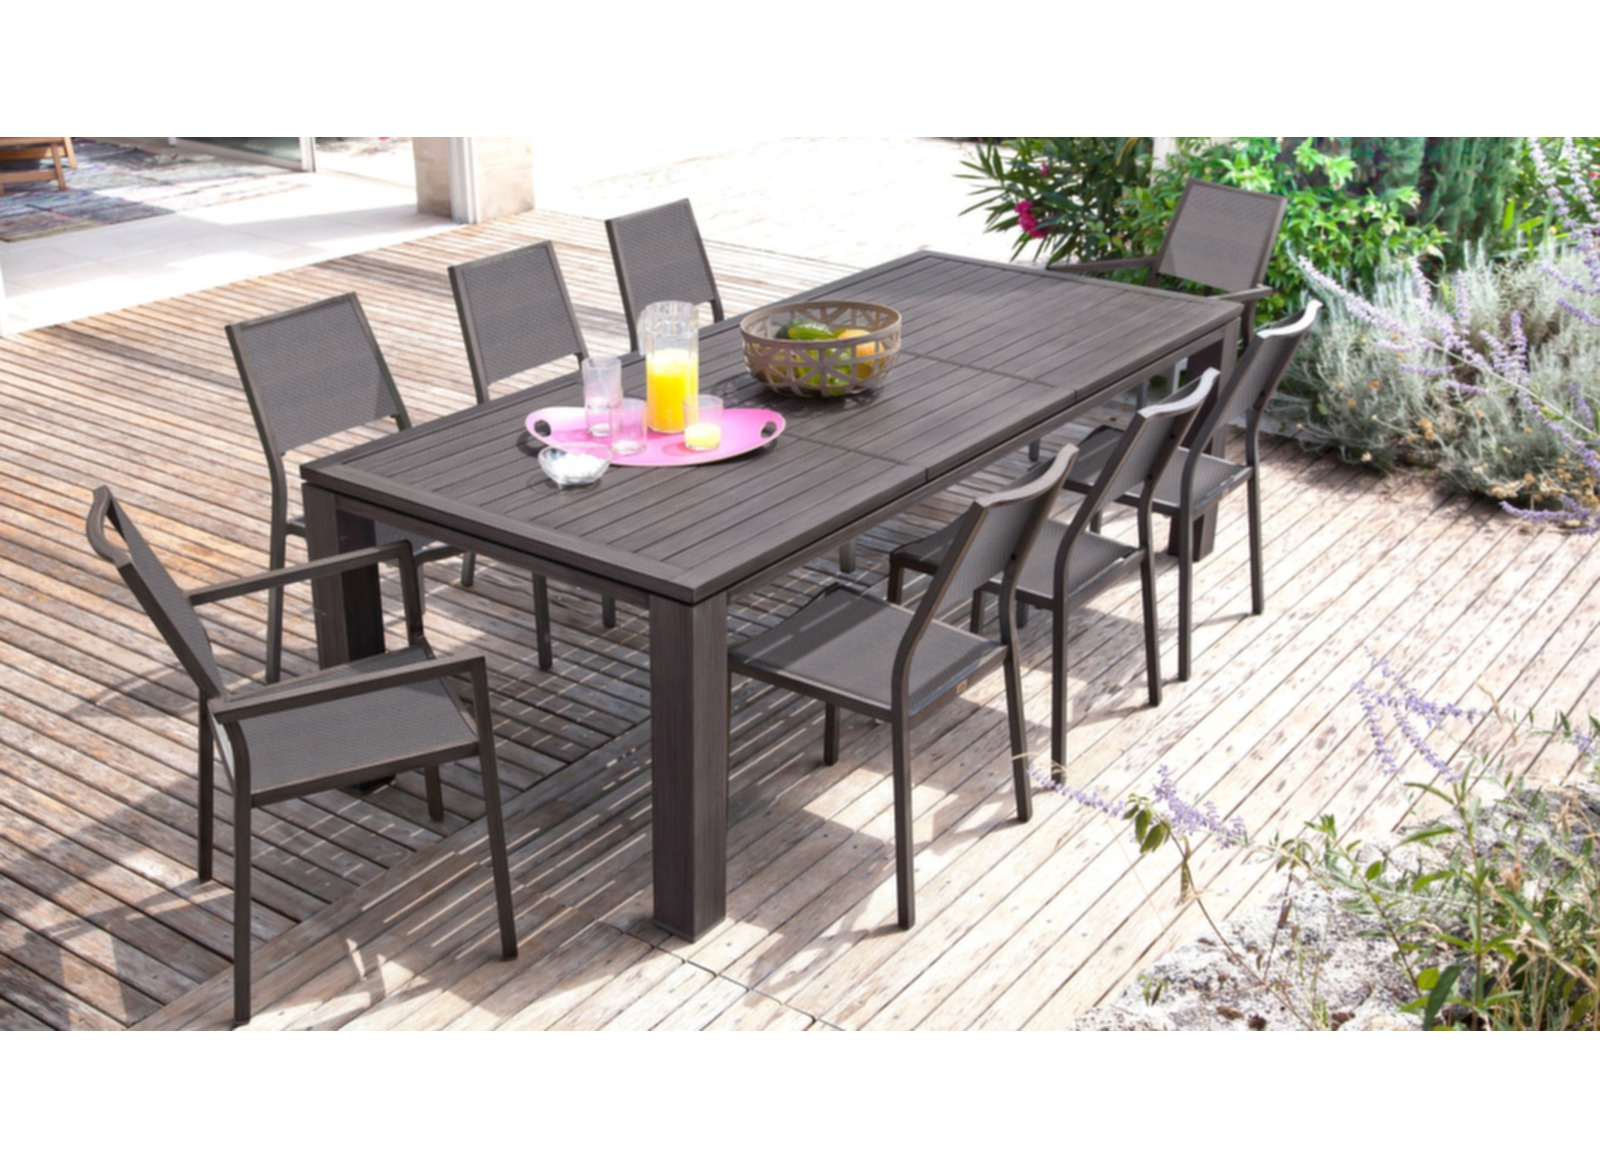 Grande table de jardin rectangle fiero proloisirs for Jardin loisir